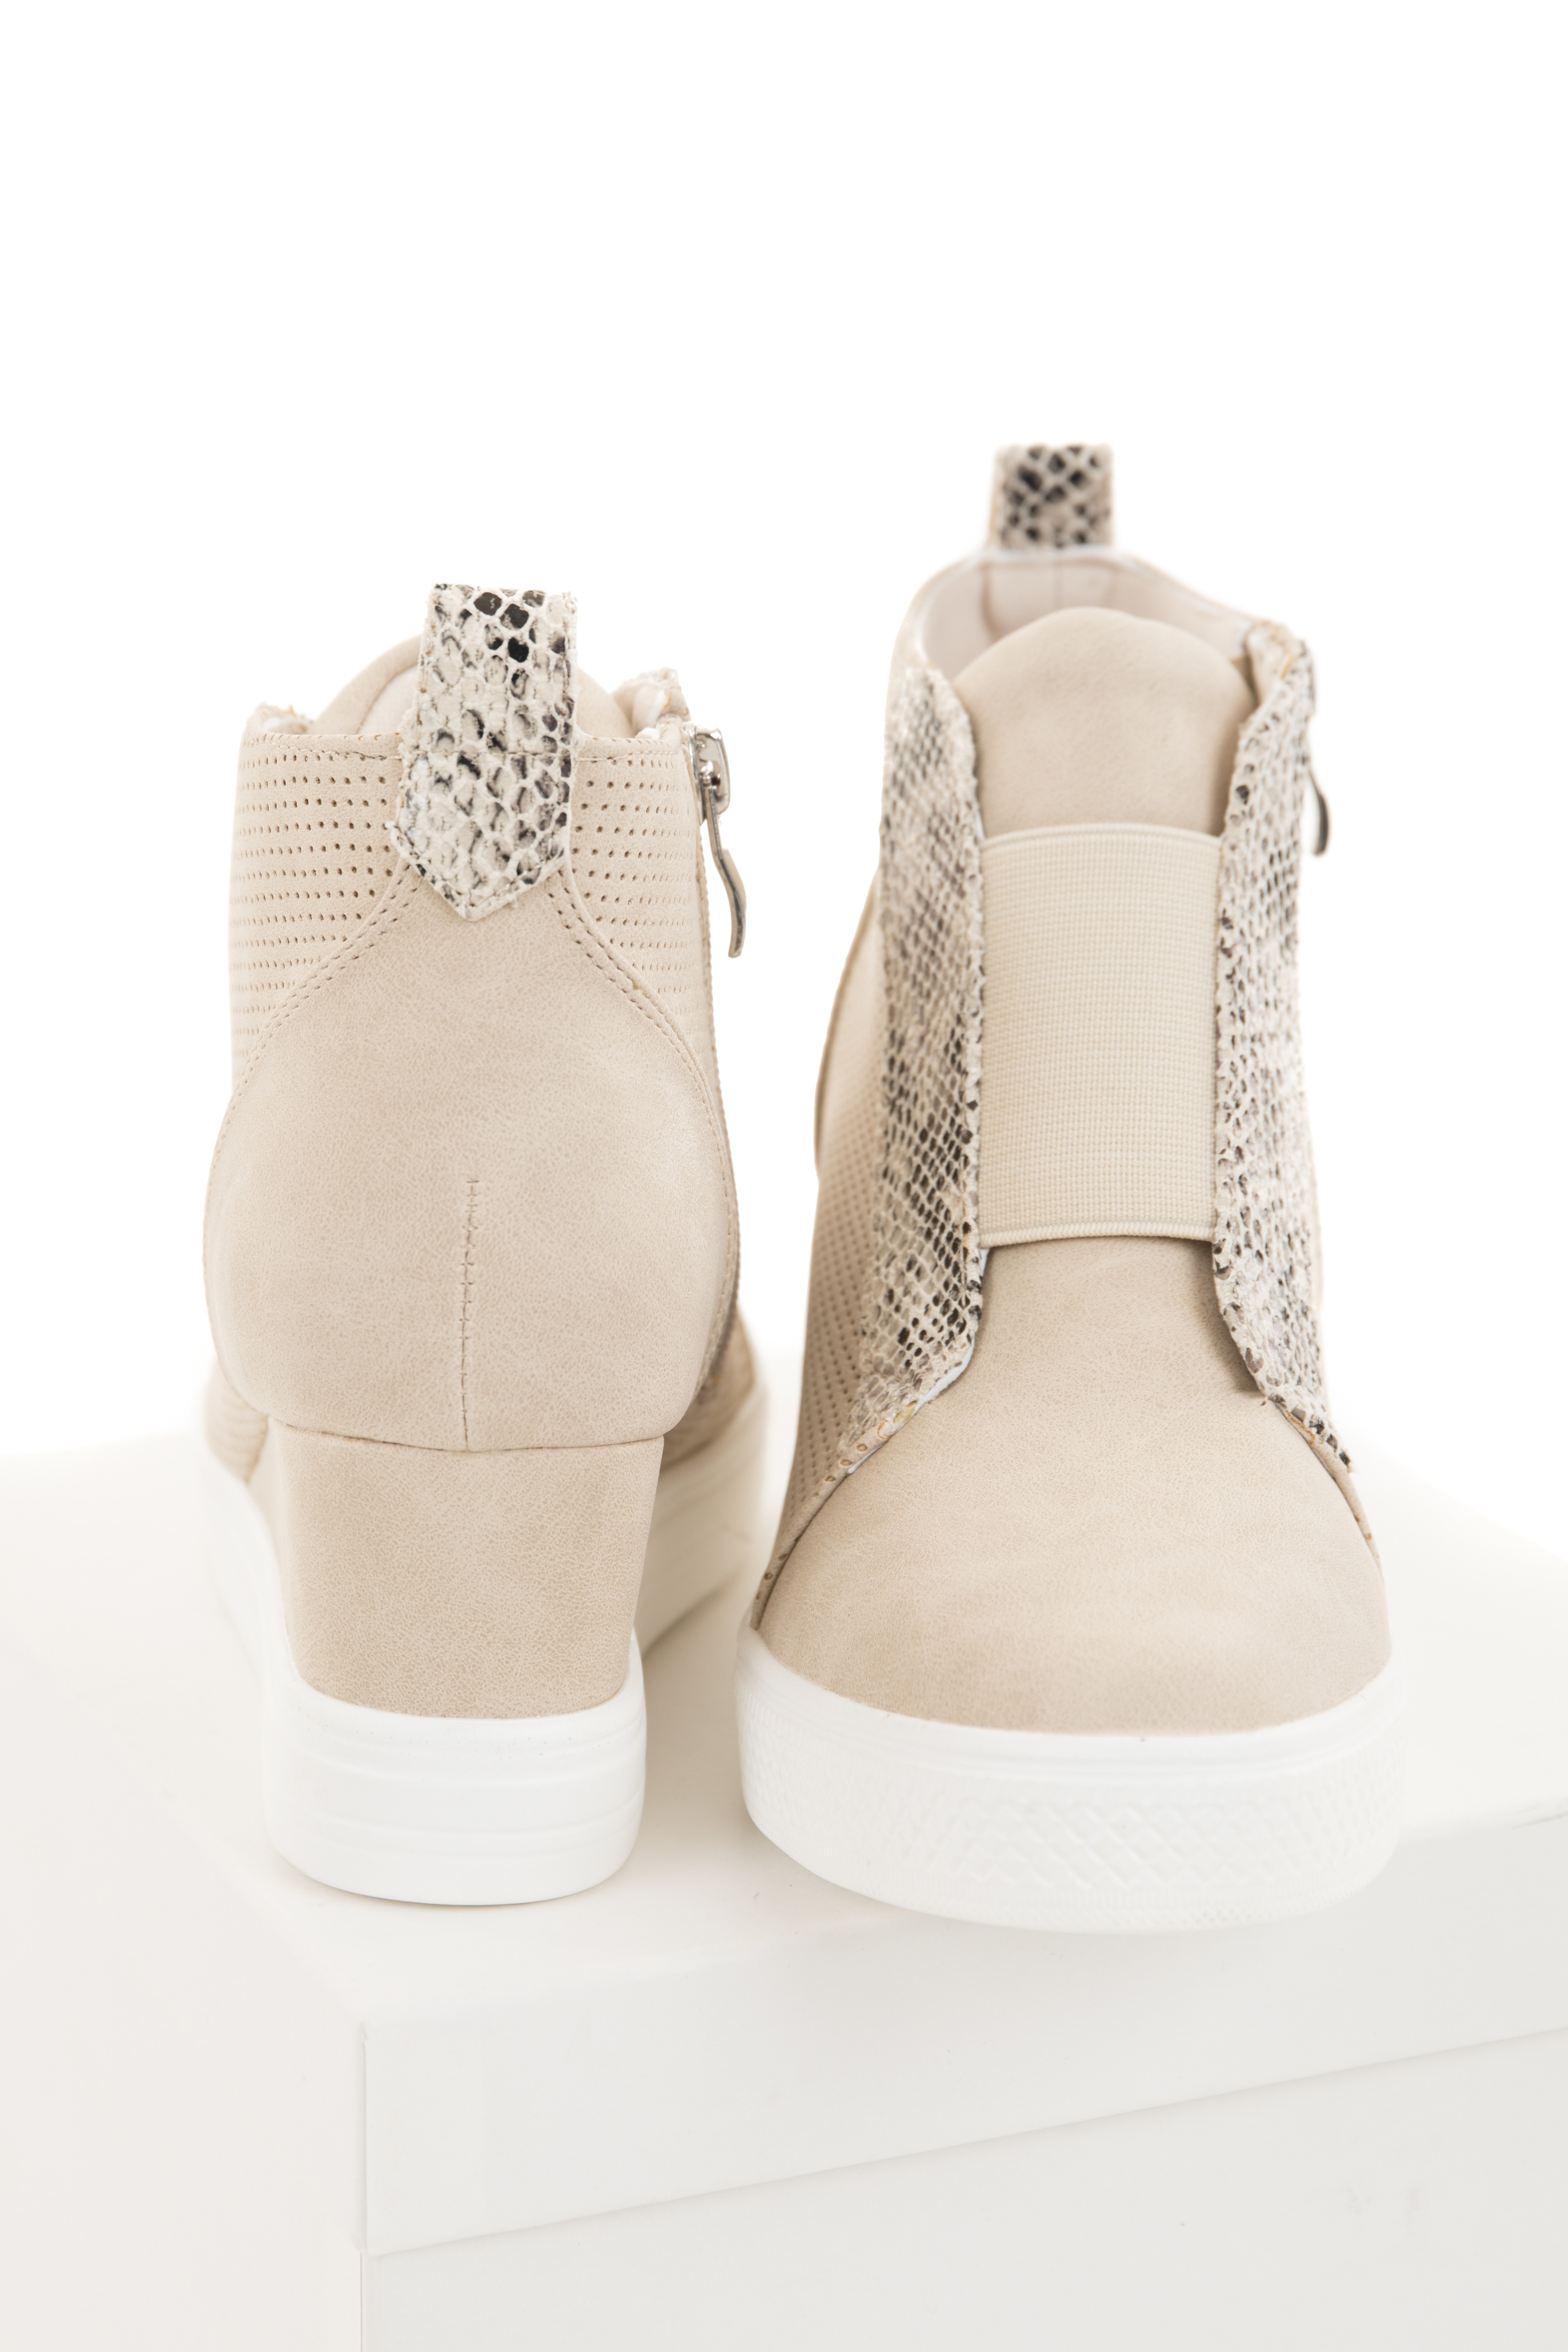 Cream and Snakeskin Textured Faux Suede Wedge Sneaker